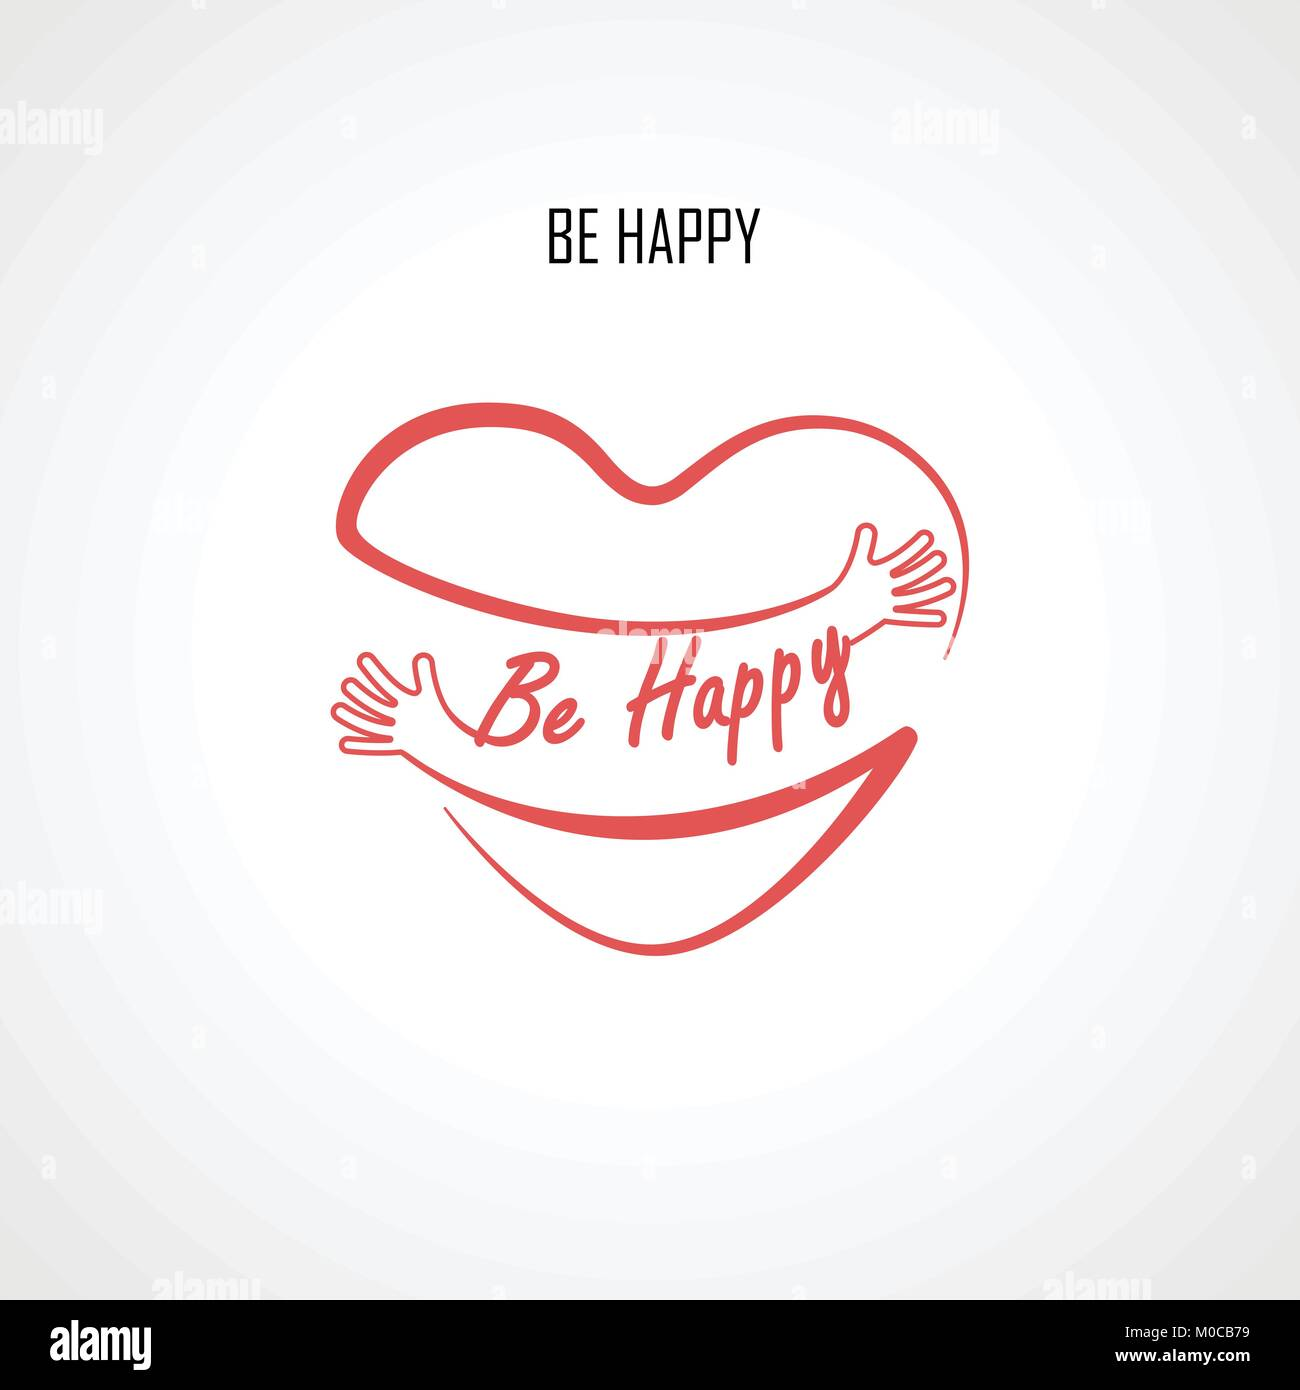 Be happy typographical design elements and red heart shape with be happy typographical design elements and red heart shape with hand embracegs and love yourself signhealth and heart care iconhappy valentines buycottarizona